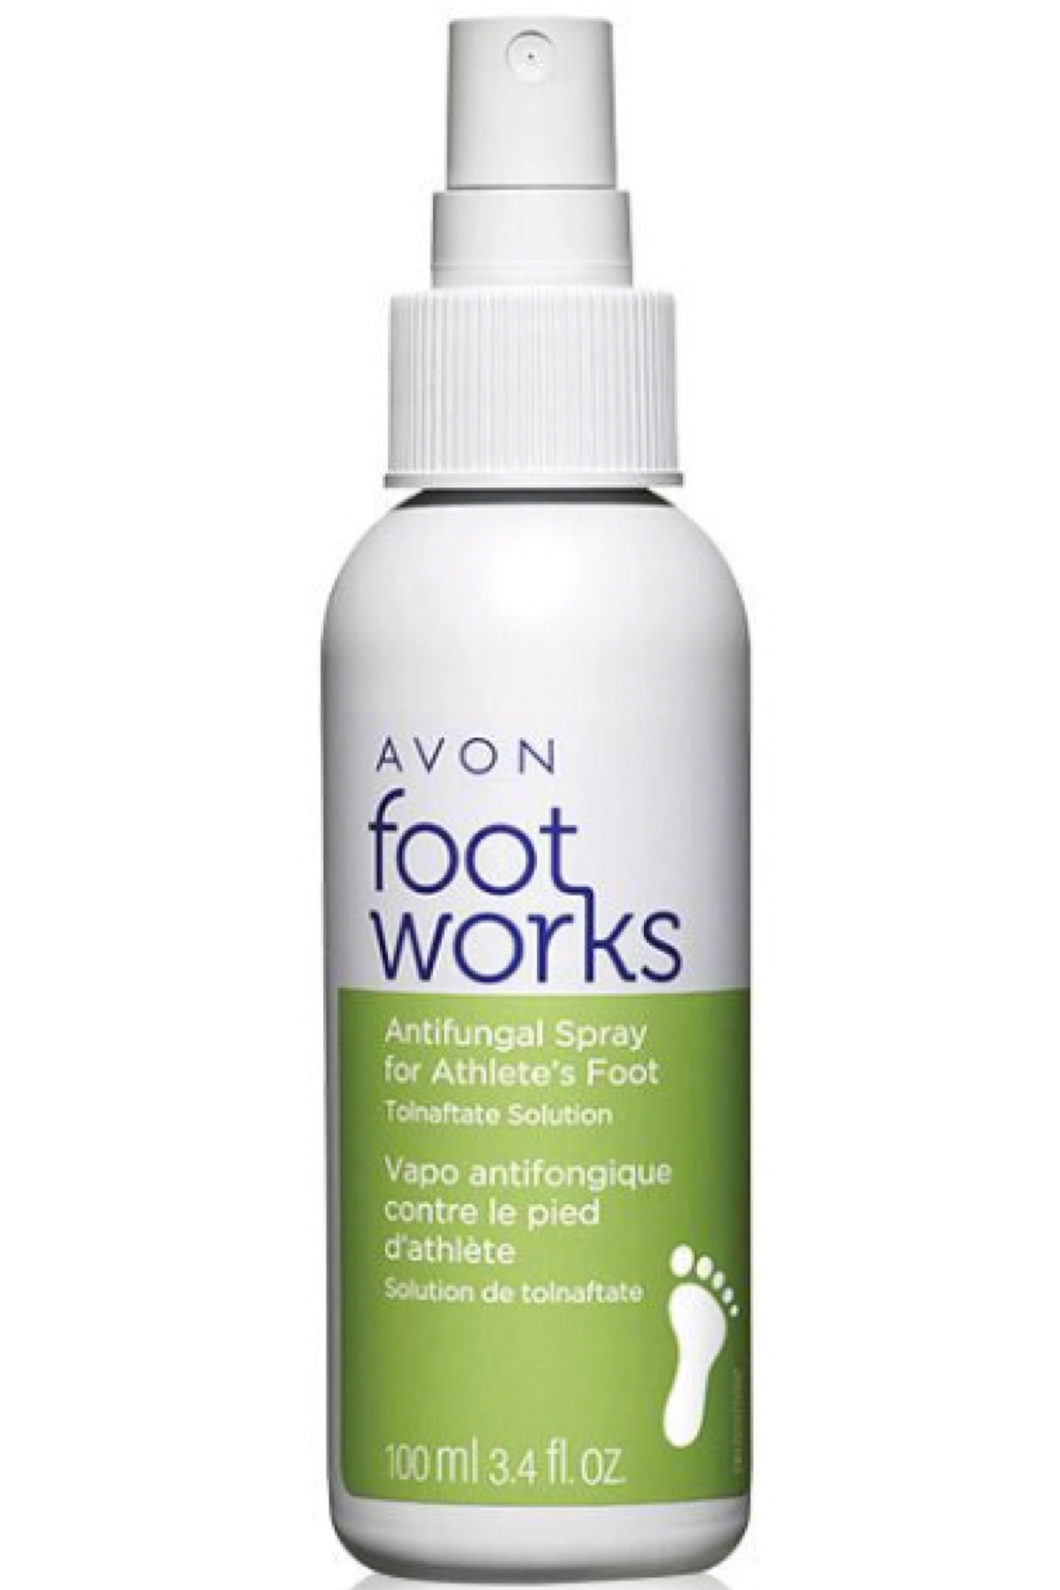 Foot Works Antifungal Spray for Athlete's Foot 100ml